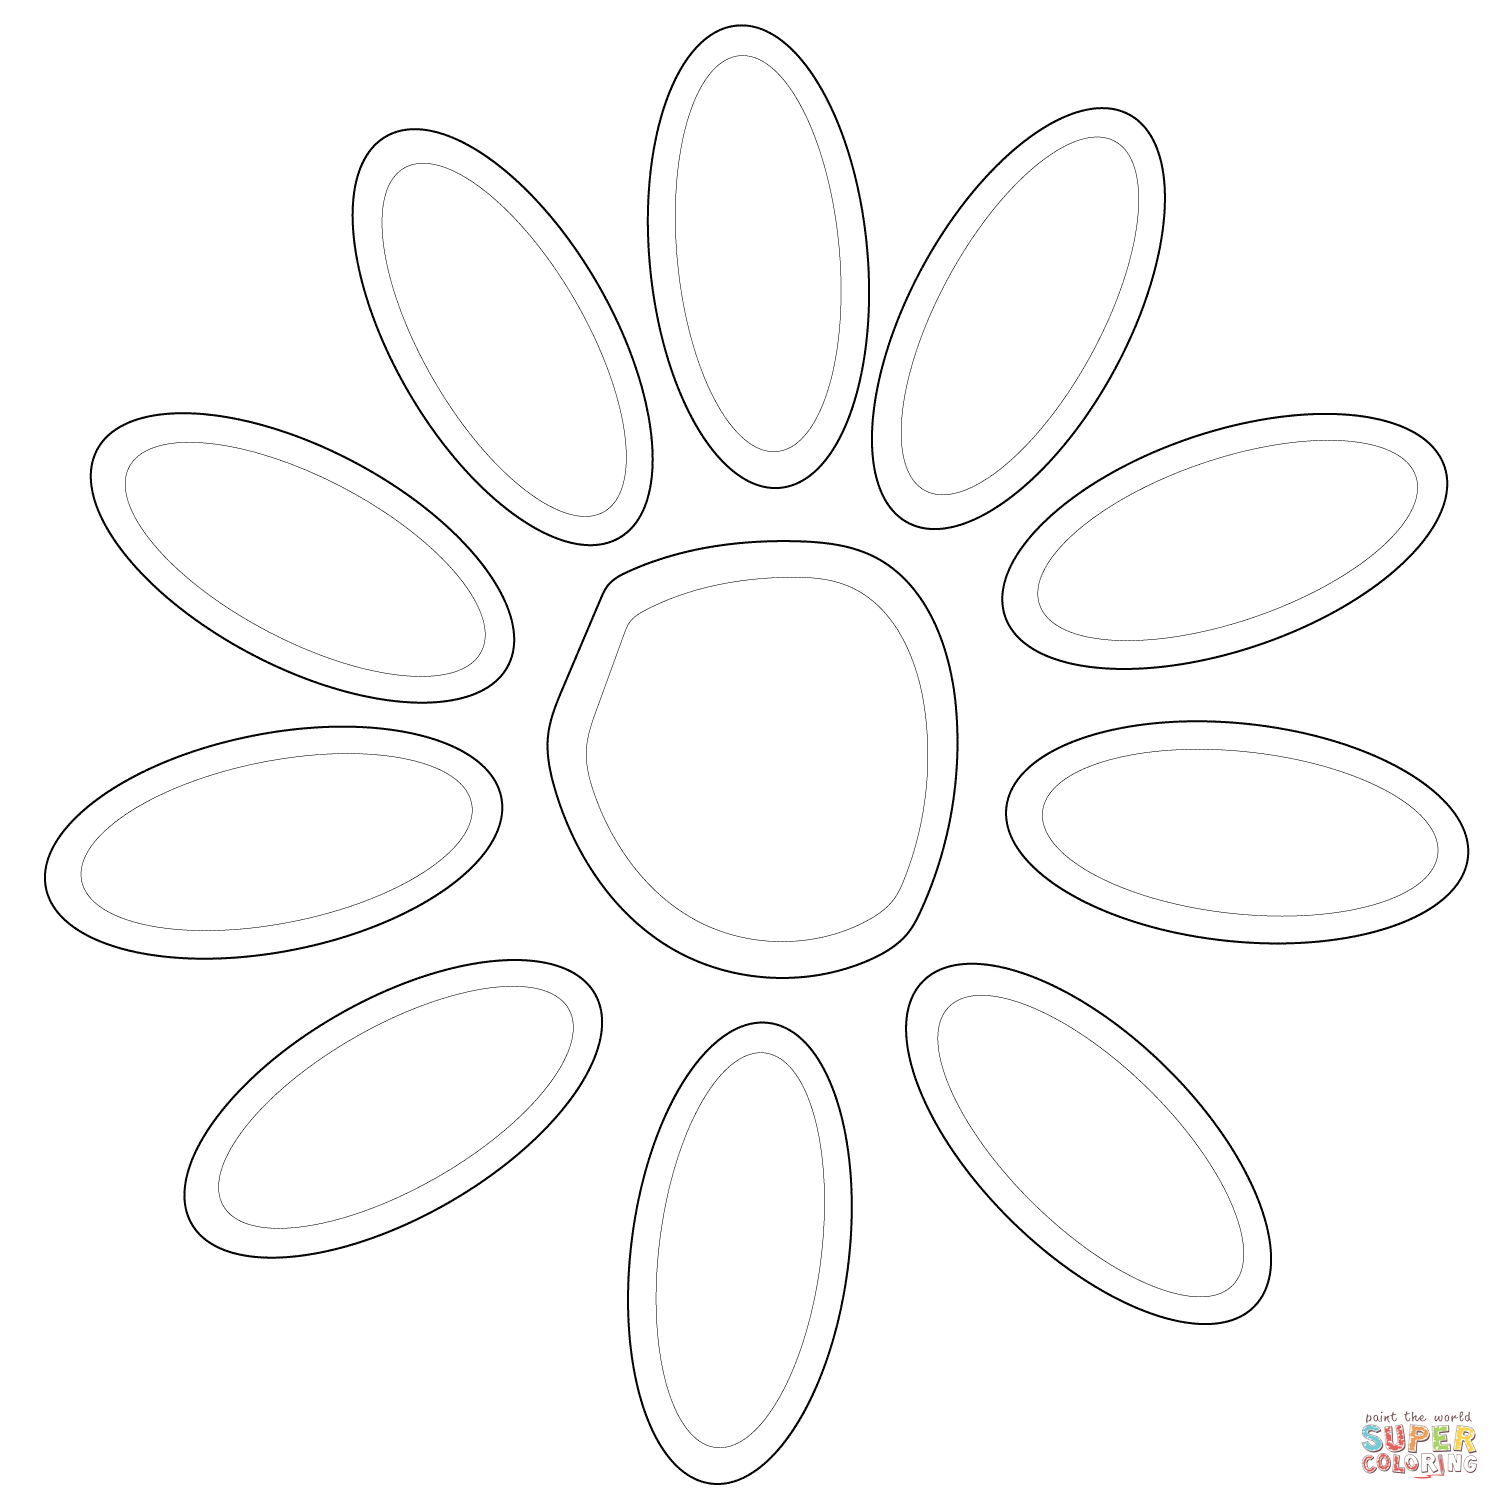 Petals coloring #2, Download drawings